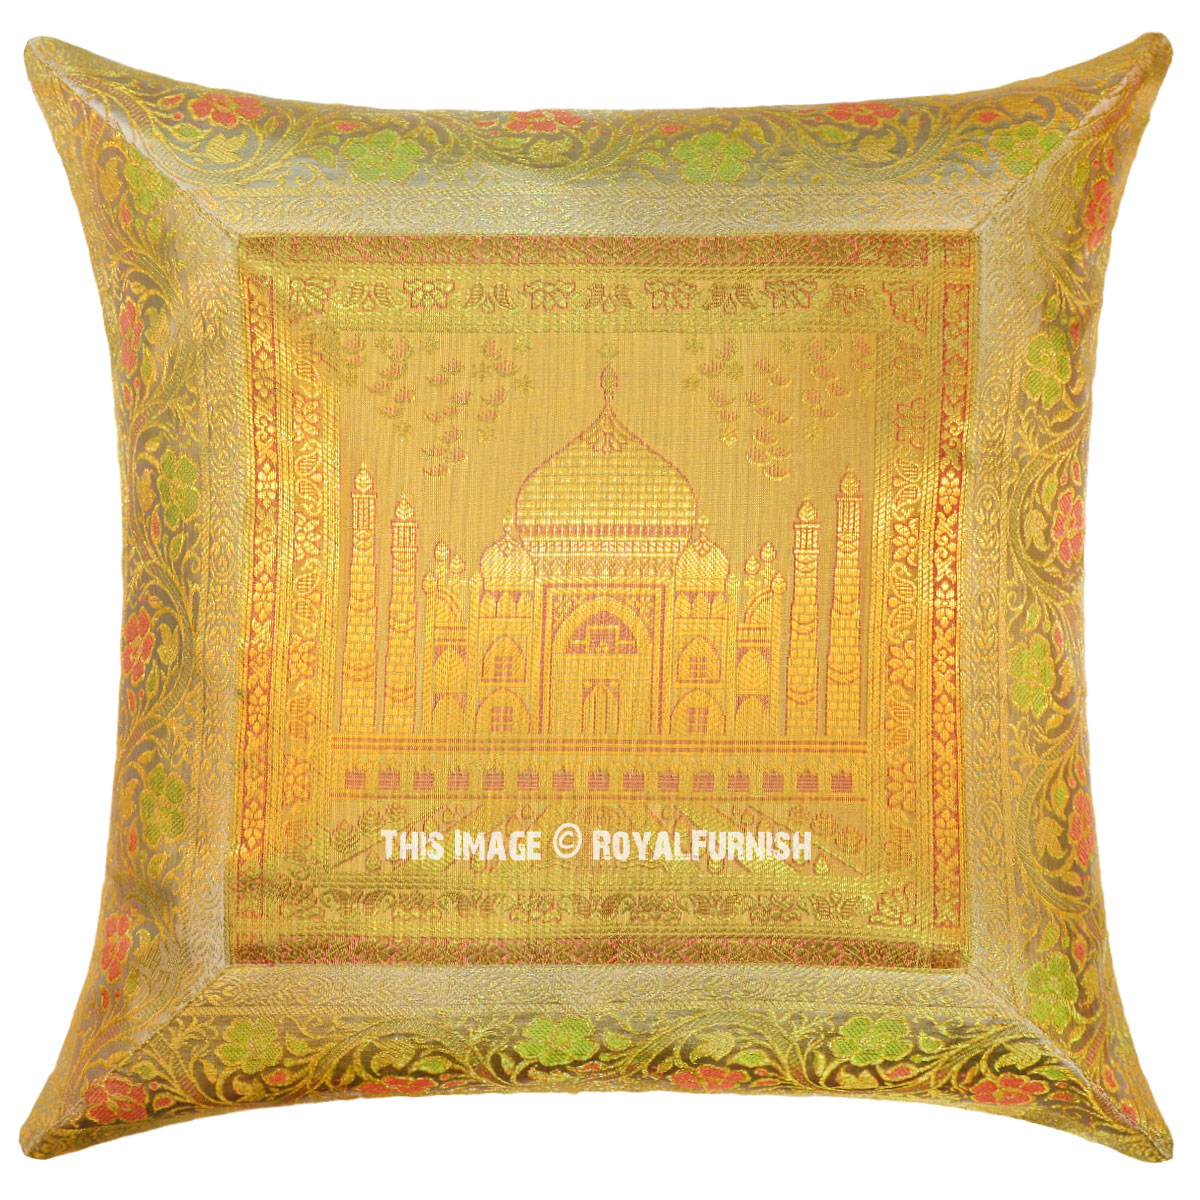 Yellow Color Decorative Tajmahal Silk Brocade Throw Pillow Cover 16X16 - RoyalFurnish.com